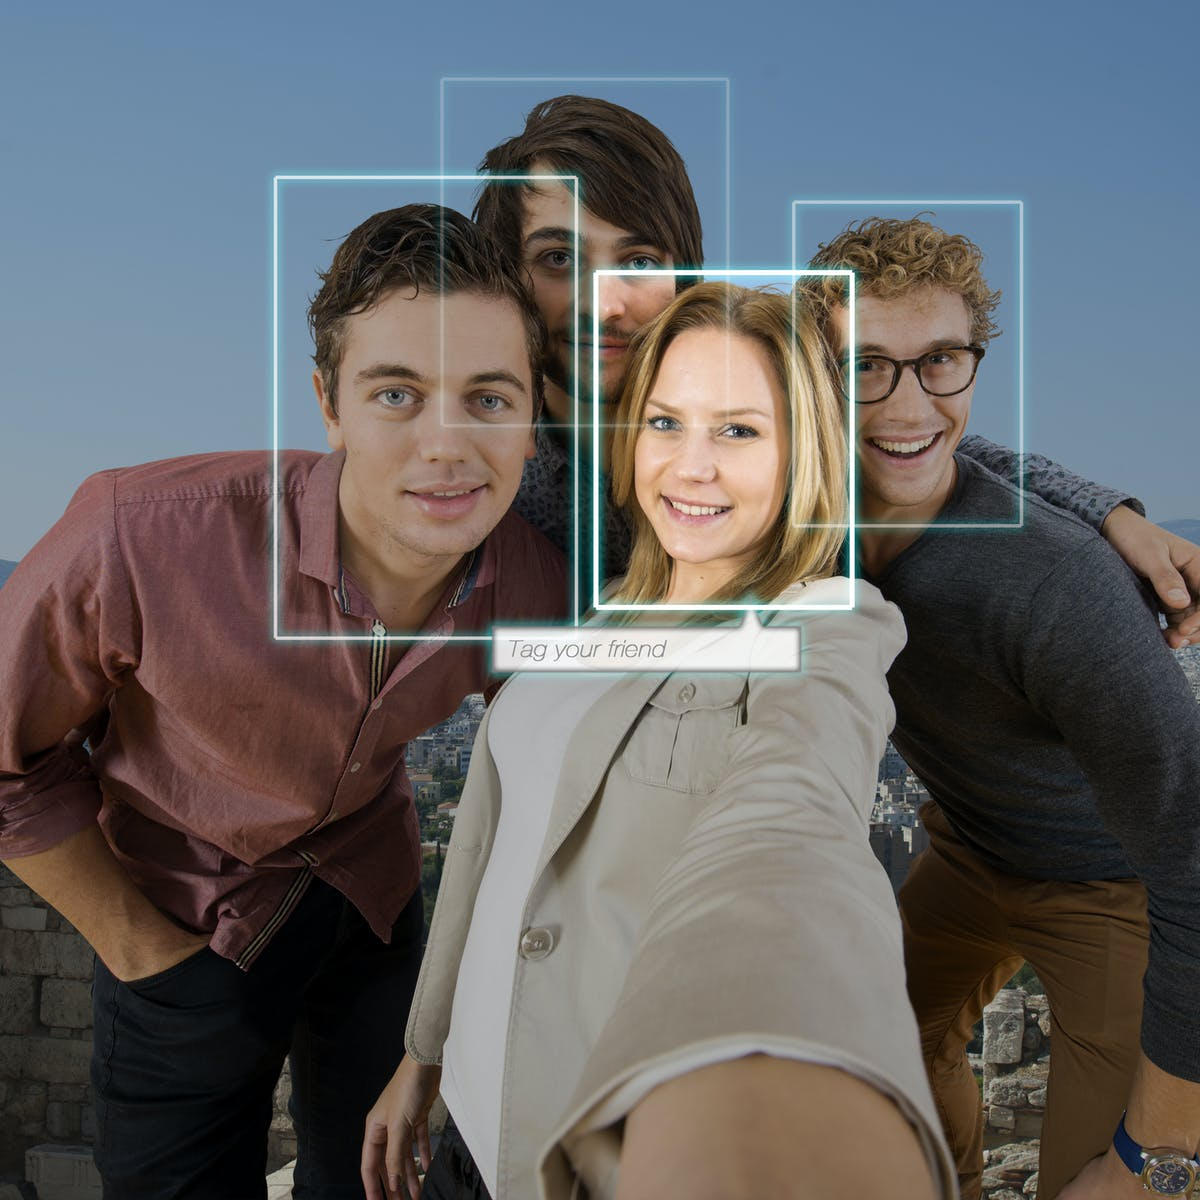 Class action against Facebook over facial recognition could